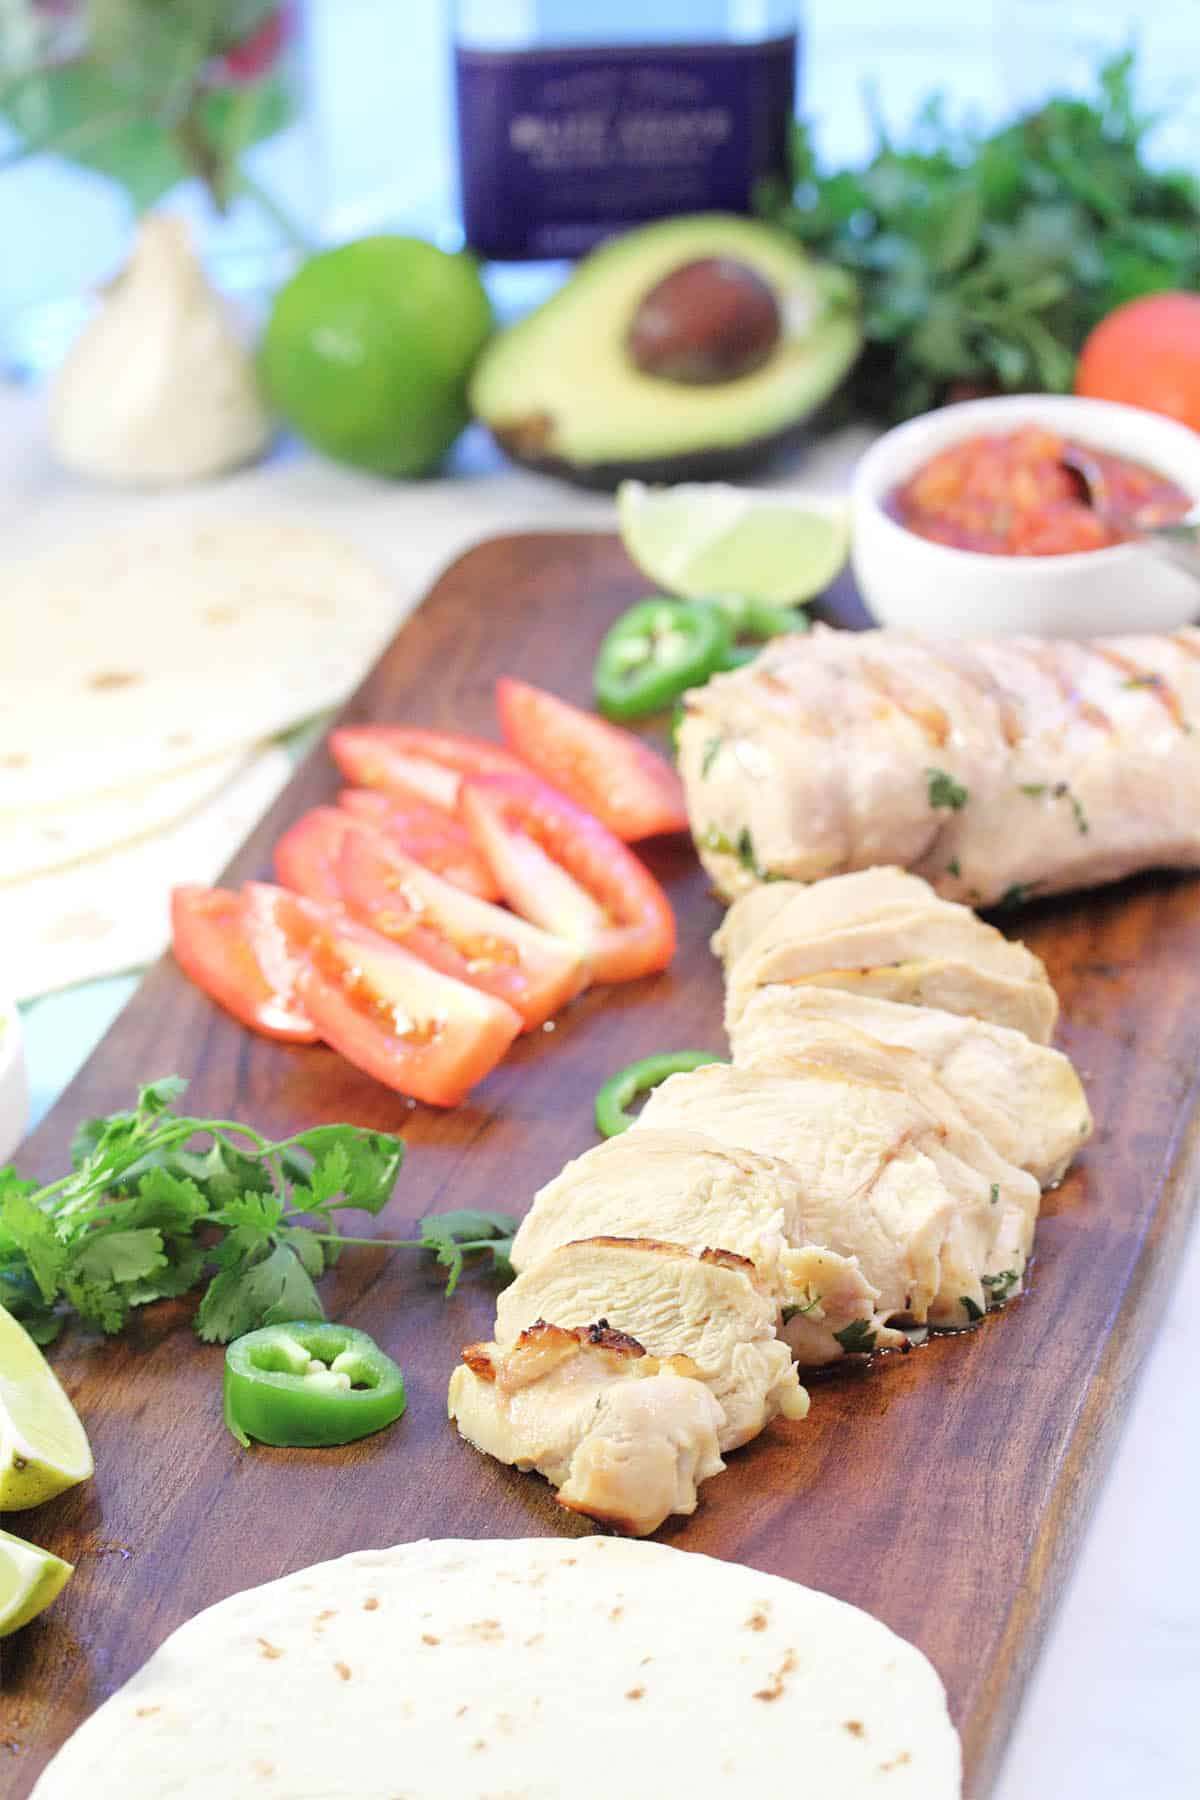 Sliced and whole grilled chicken on wooden board with sliced tomatoes jalapeno and salsa.